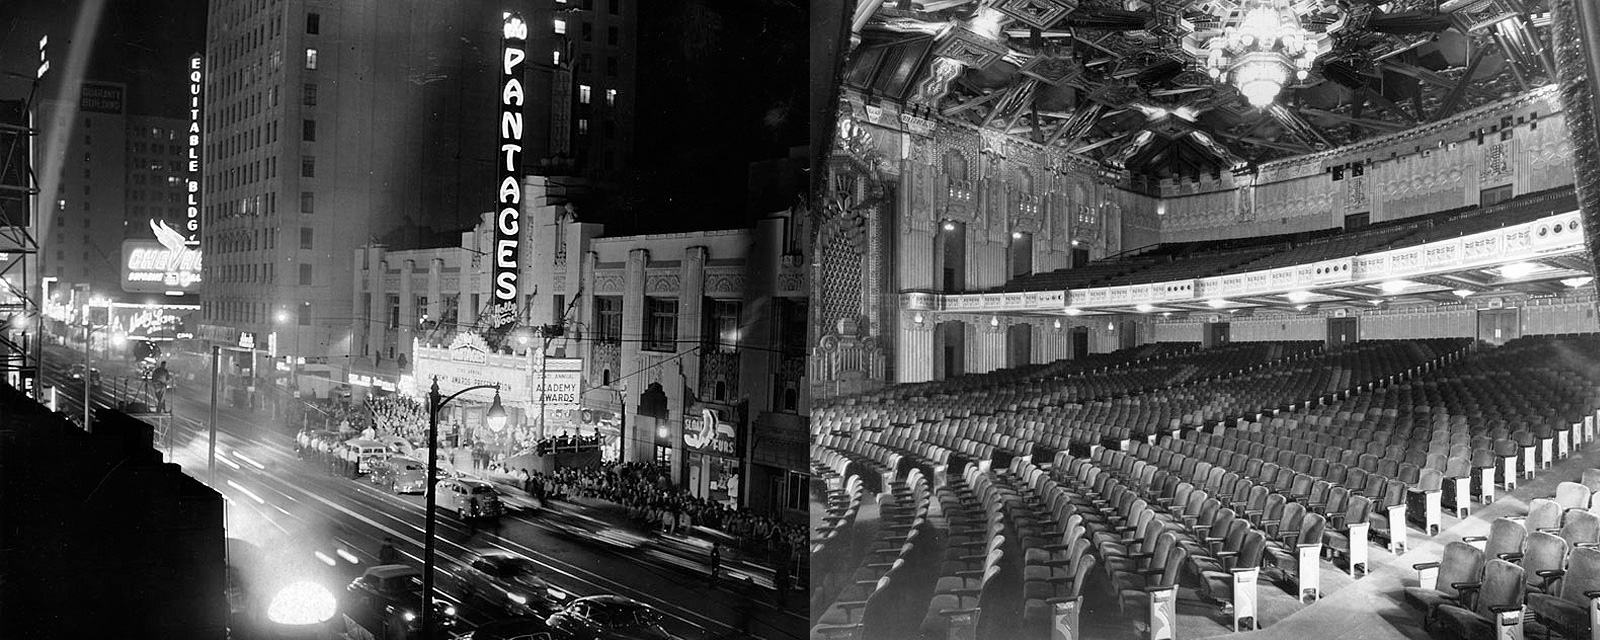 The Pantages Theatre in the 1950s. Photos from the Pantages website.